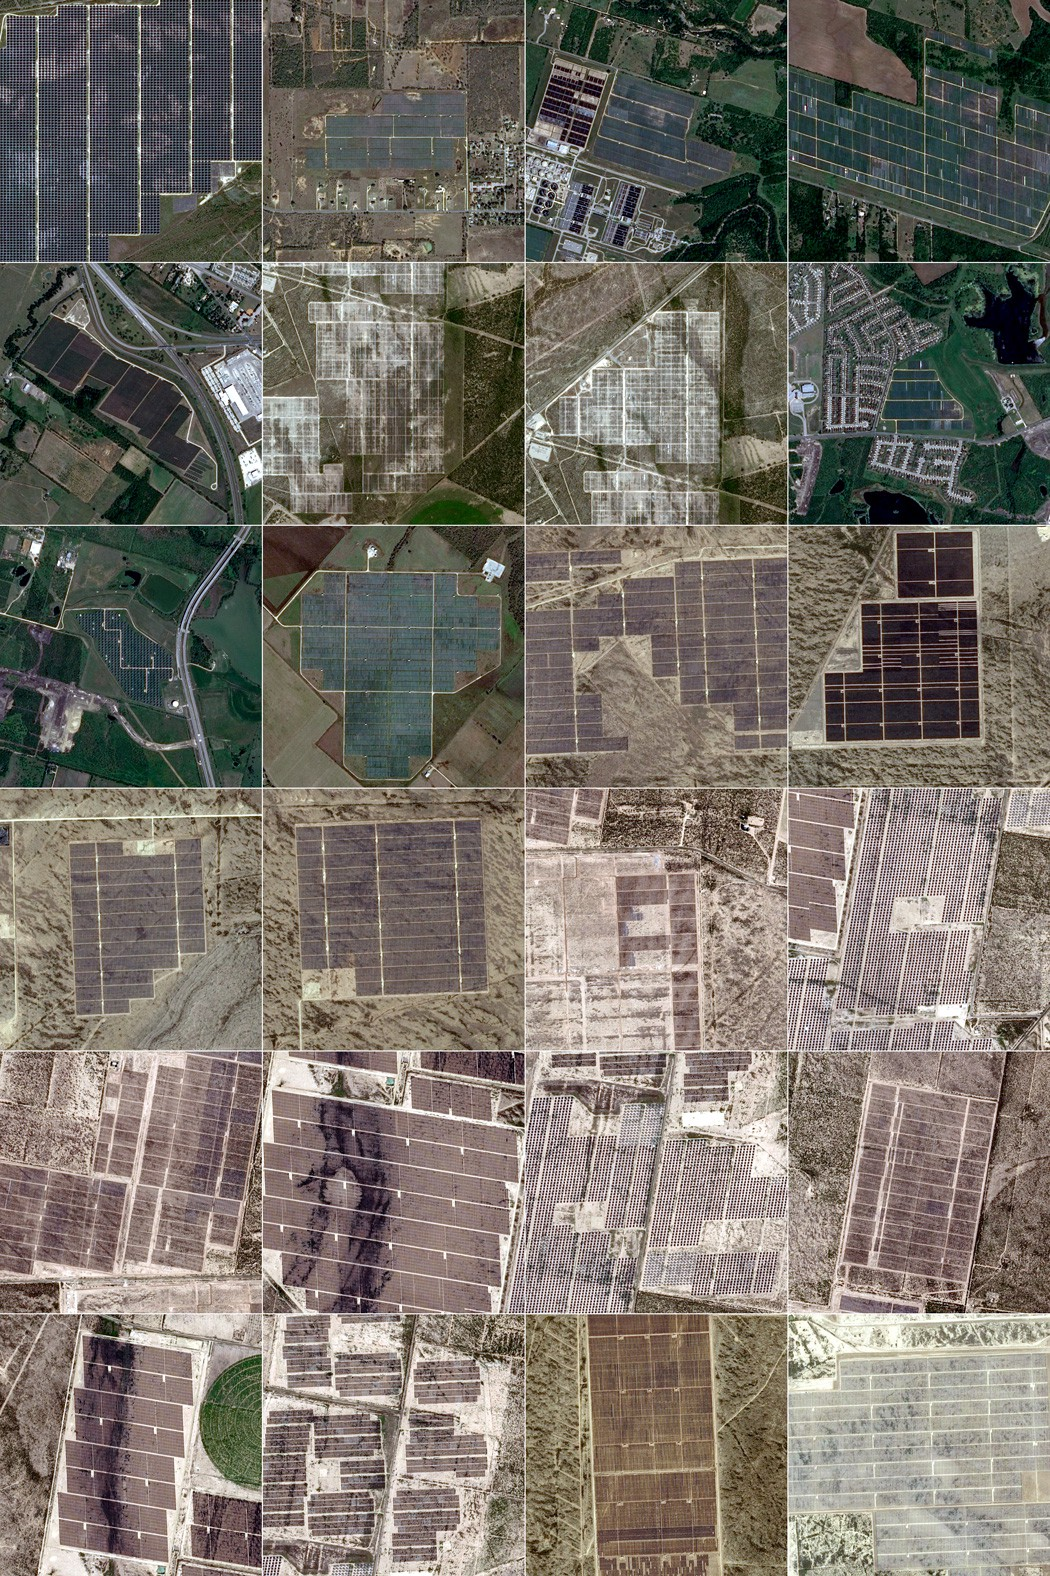 Image tiles of utility-scale solar farms in Texas